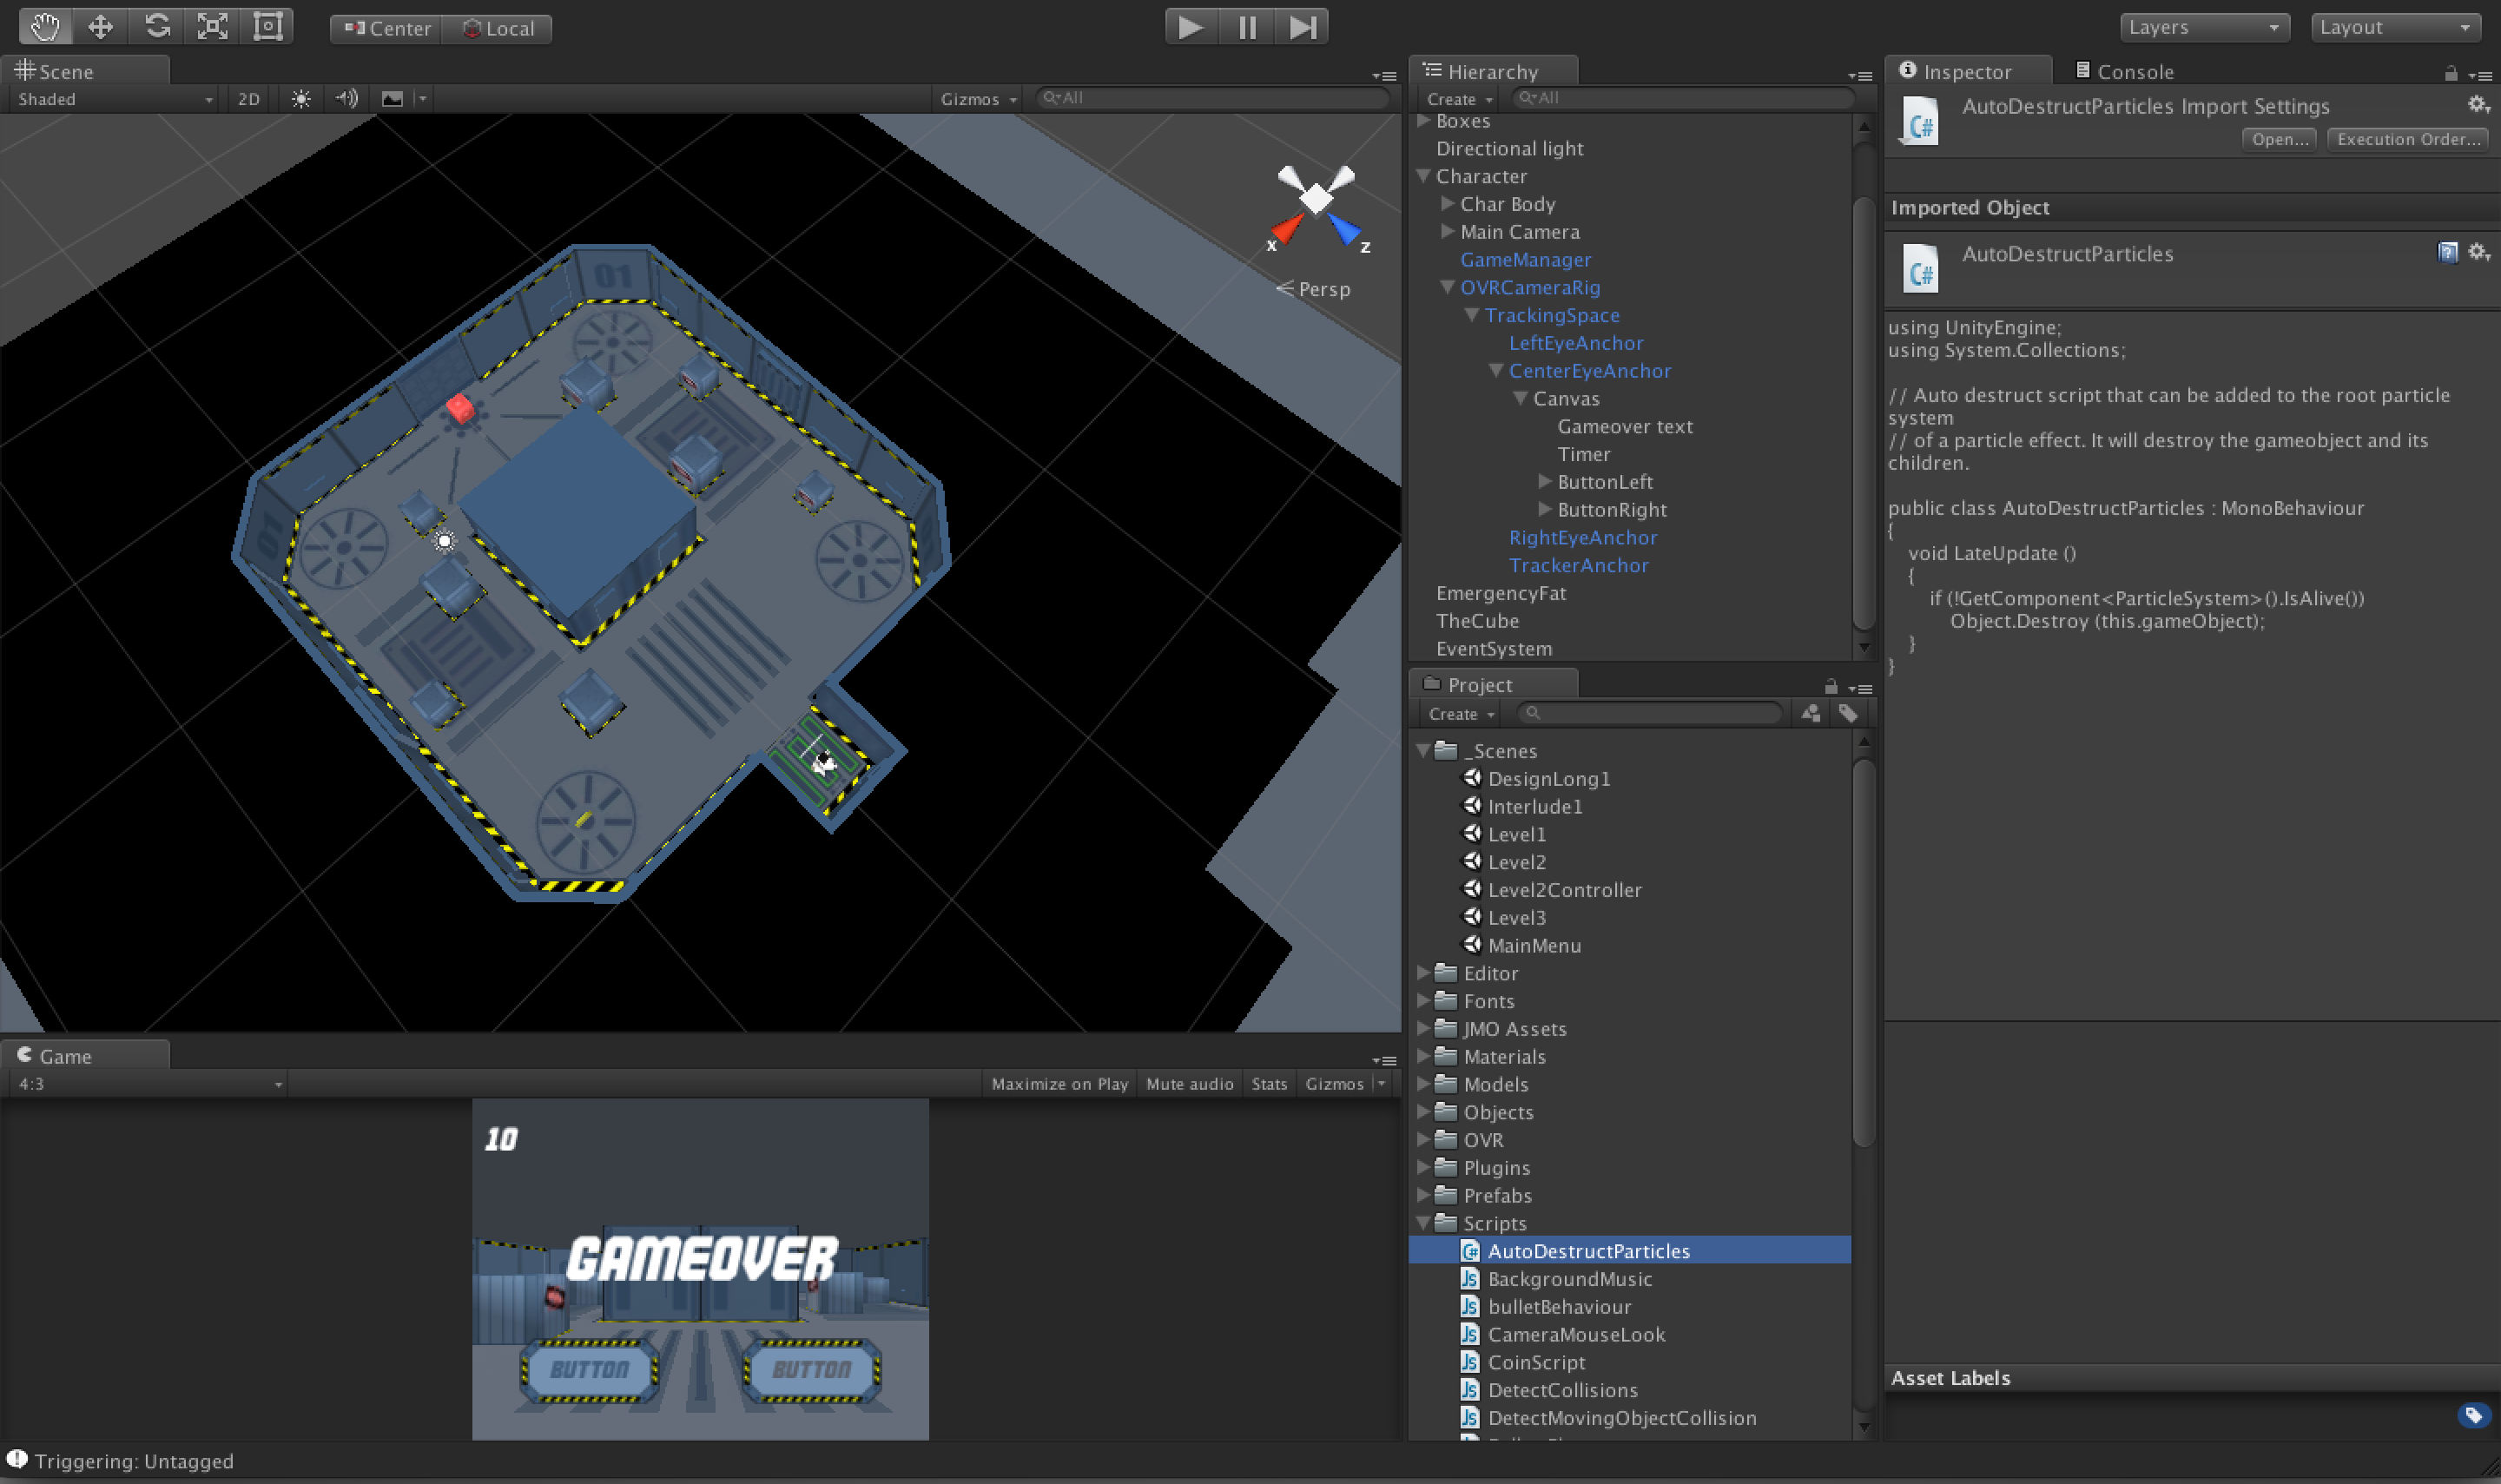 Unity Game Design: Local Multiplayer 2 Day (Ages 13-15) – Museum of